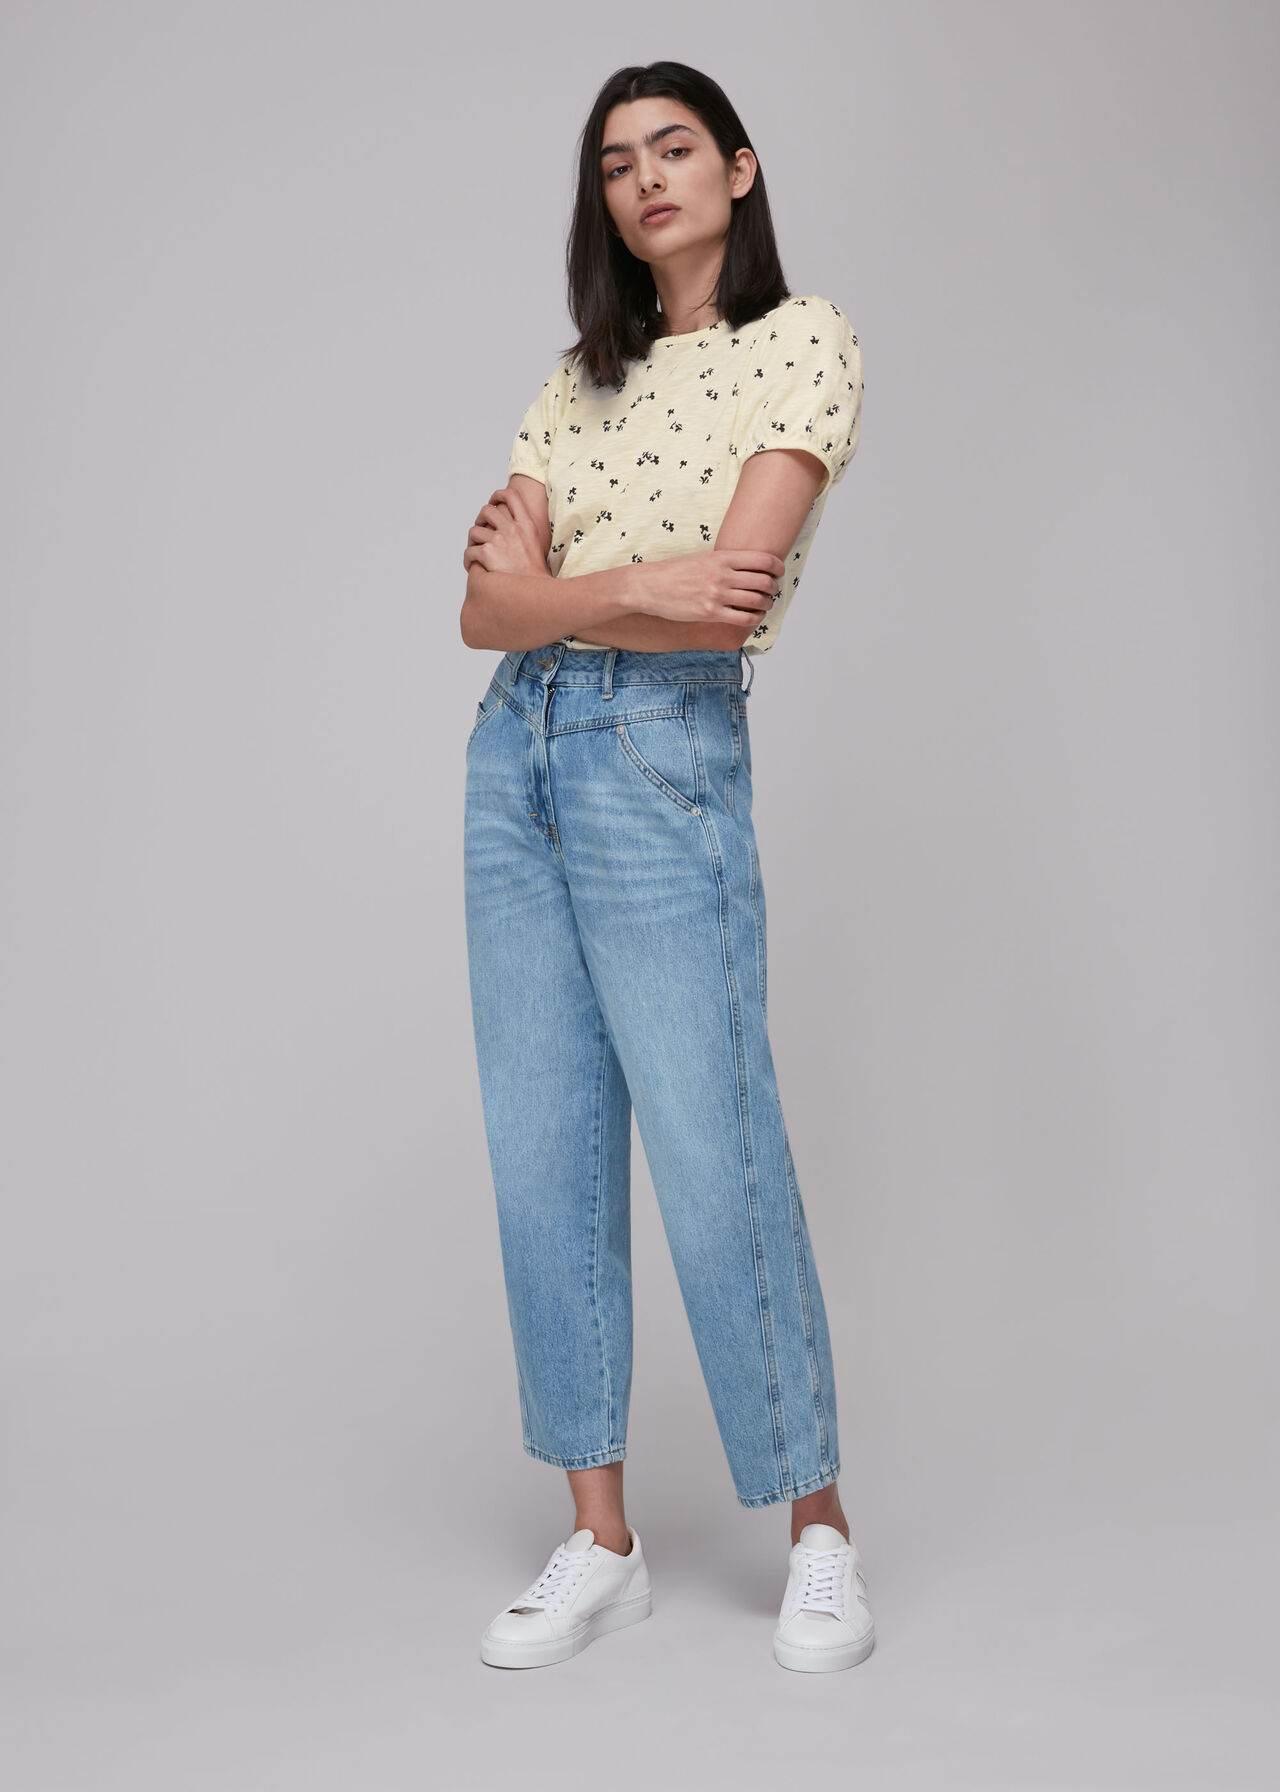 Puff Sleeve Forget Me Not Cream/Multi